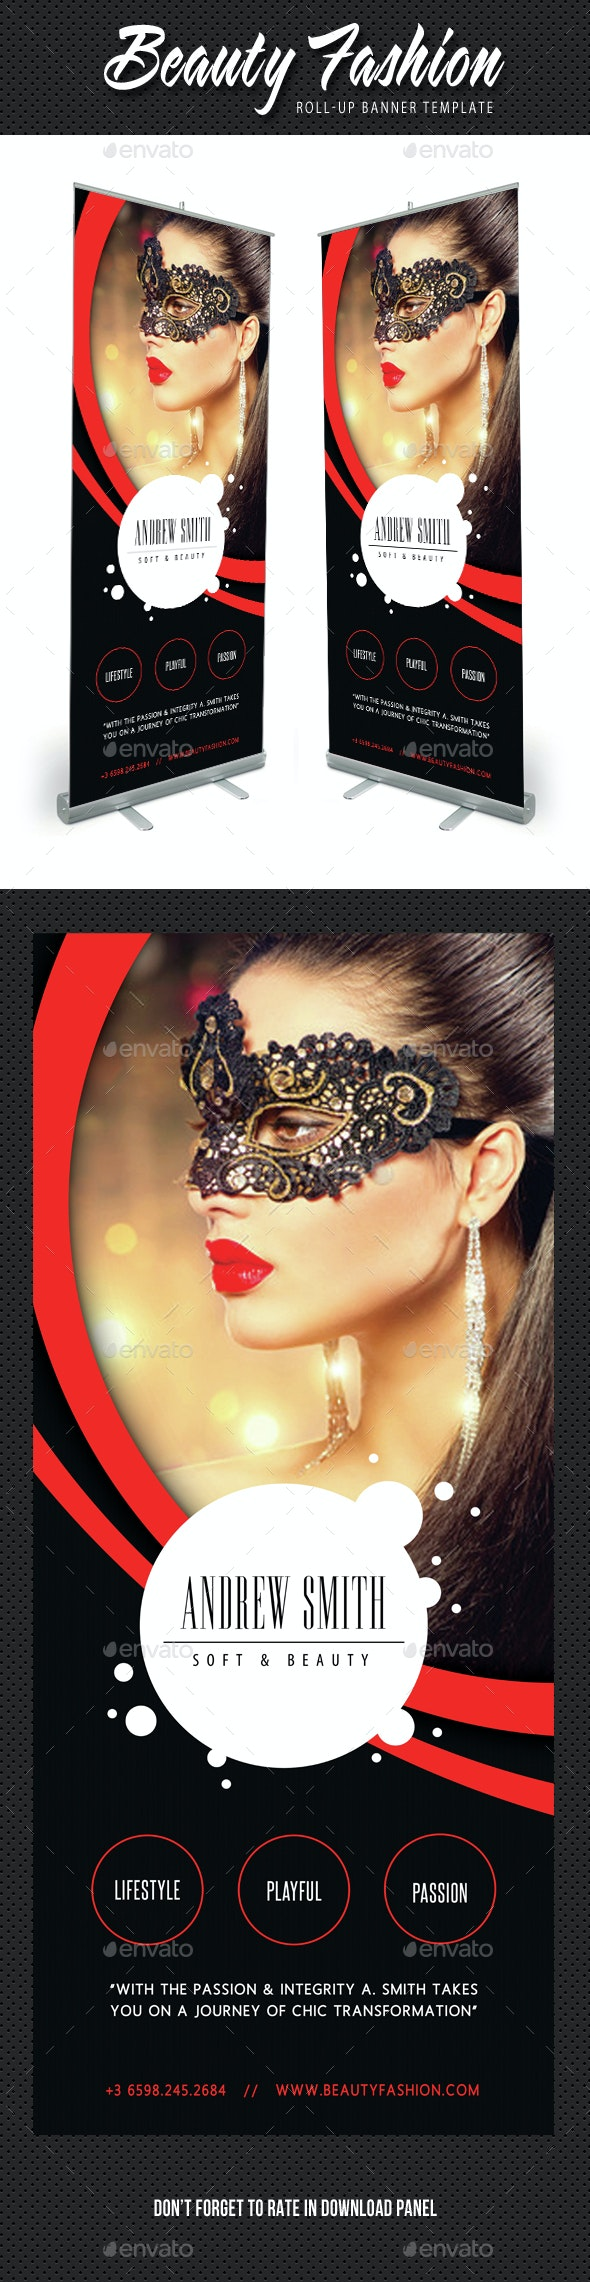 Beauty Fashion Banner Template V04 - Signage Print Templates